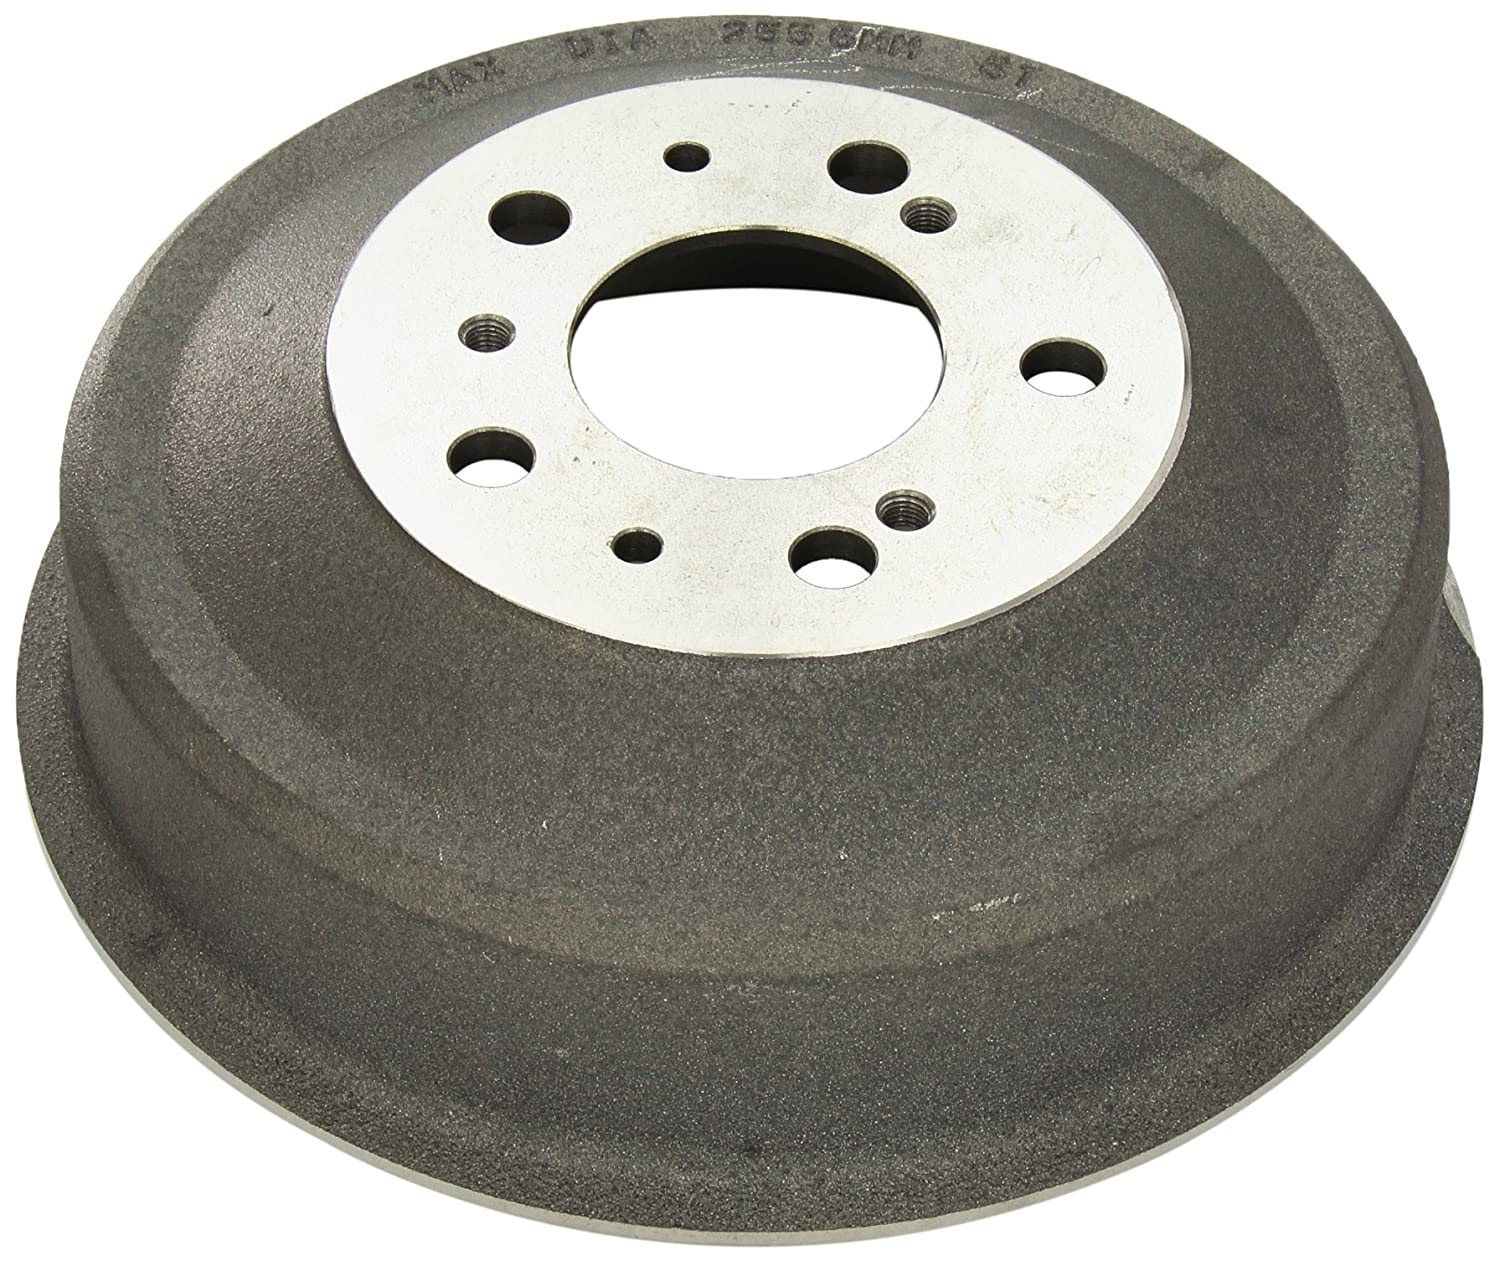 ABS All Brake Systems 3231-S Tambour de frein ABS All Brake Systems bv